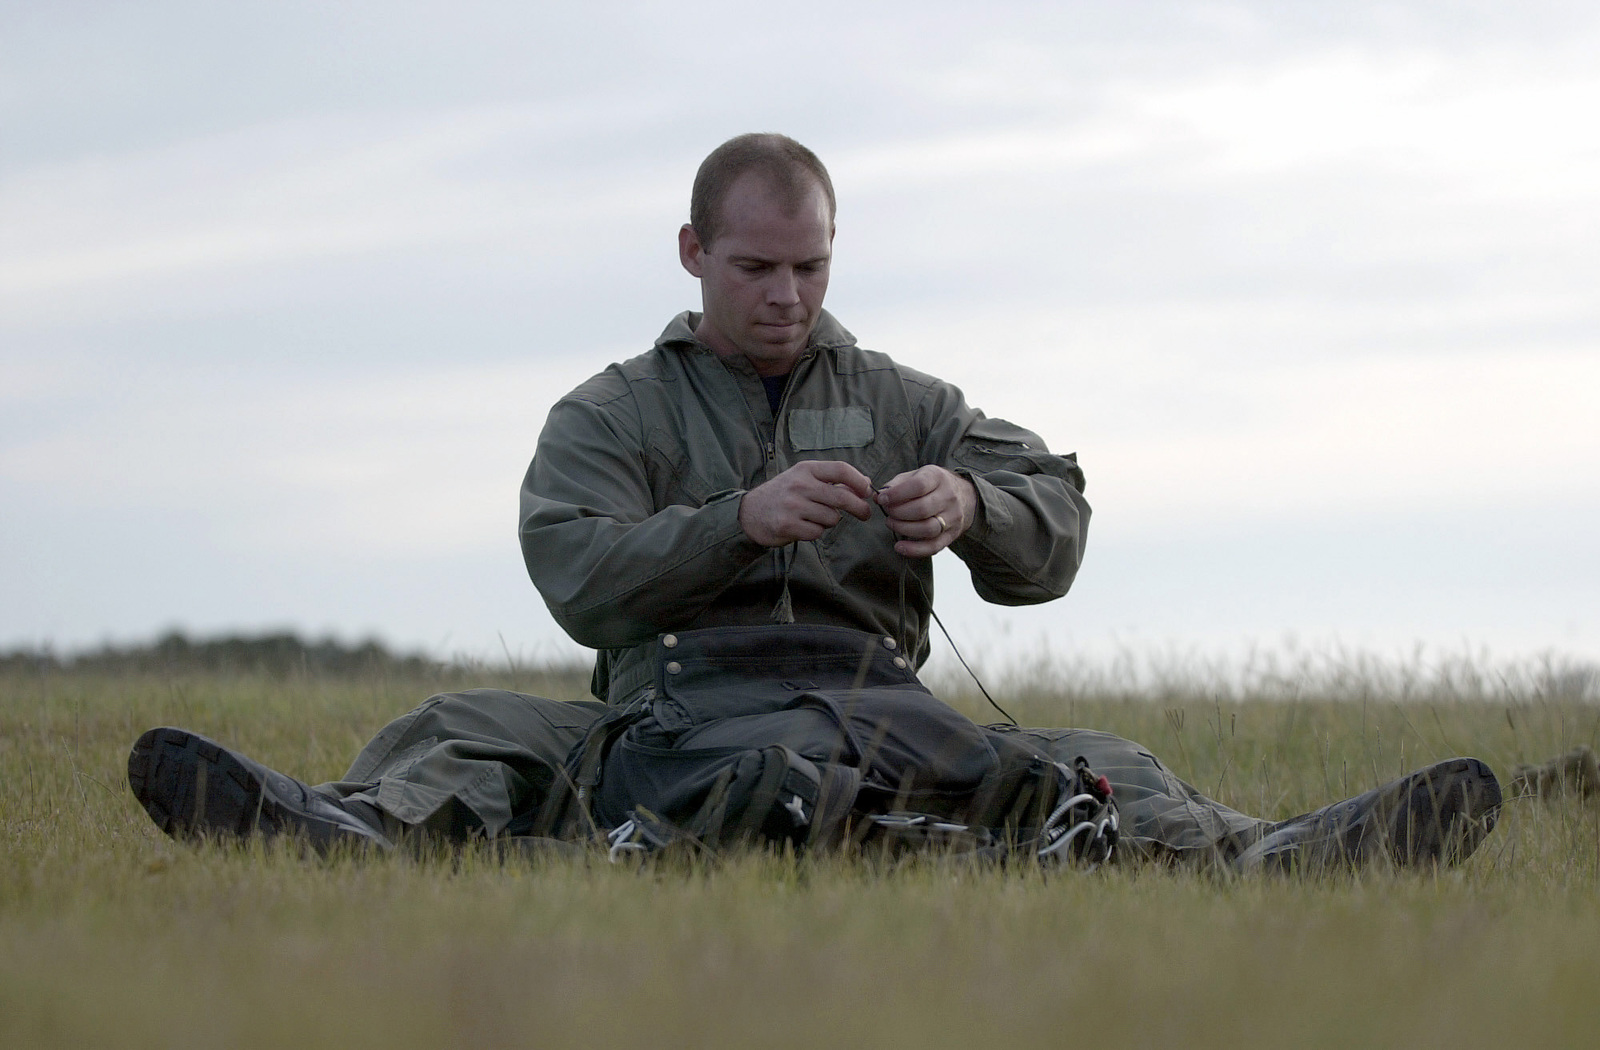 Boatswain's Mate 1ST Class (BM1) Mike Day of SEAL team eight (SEAL8) prepares his parachute for a 10,000 foot jump during JOINT TASK FORCE (JTFEX), UNIFIED SPIRIT 2000